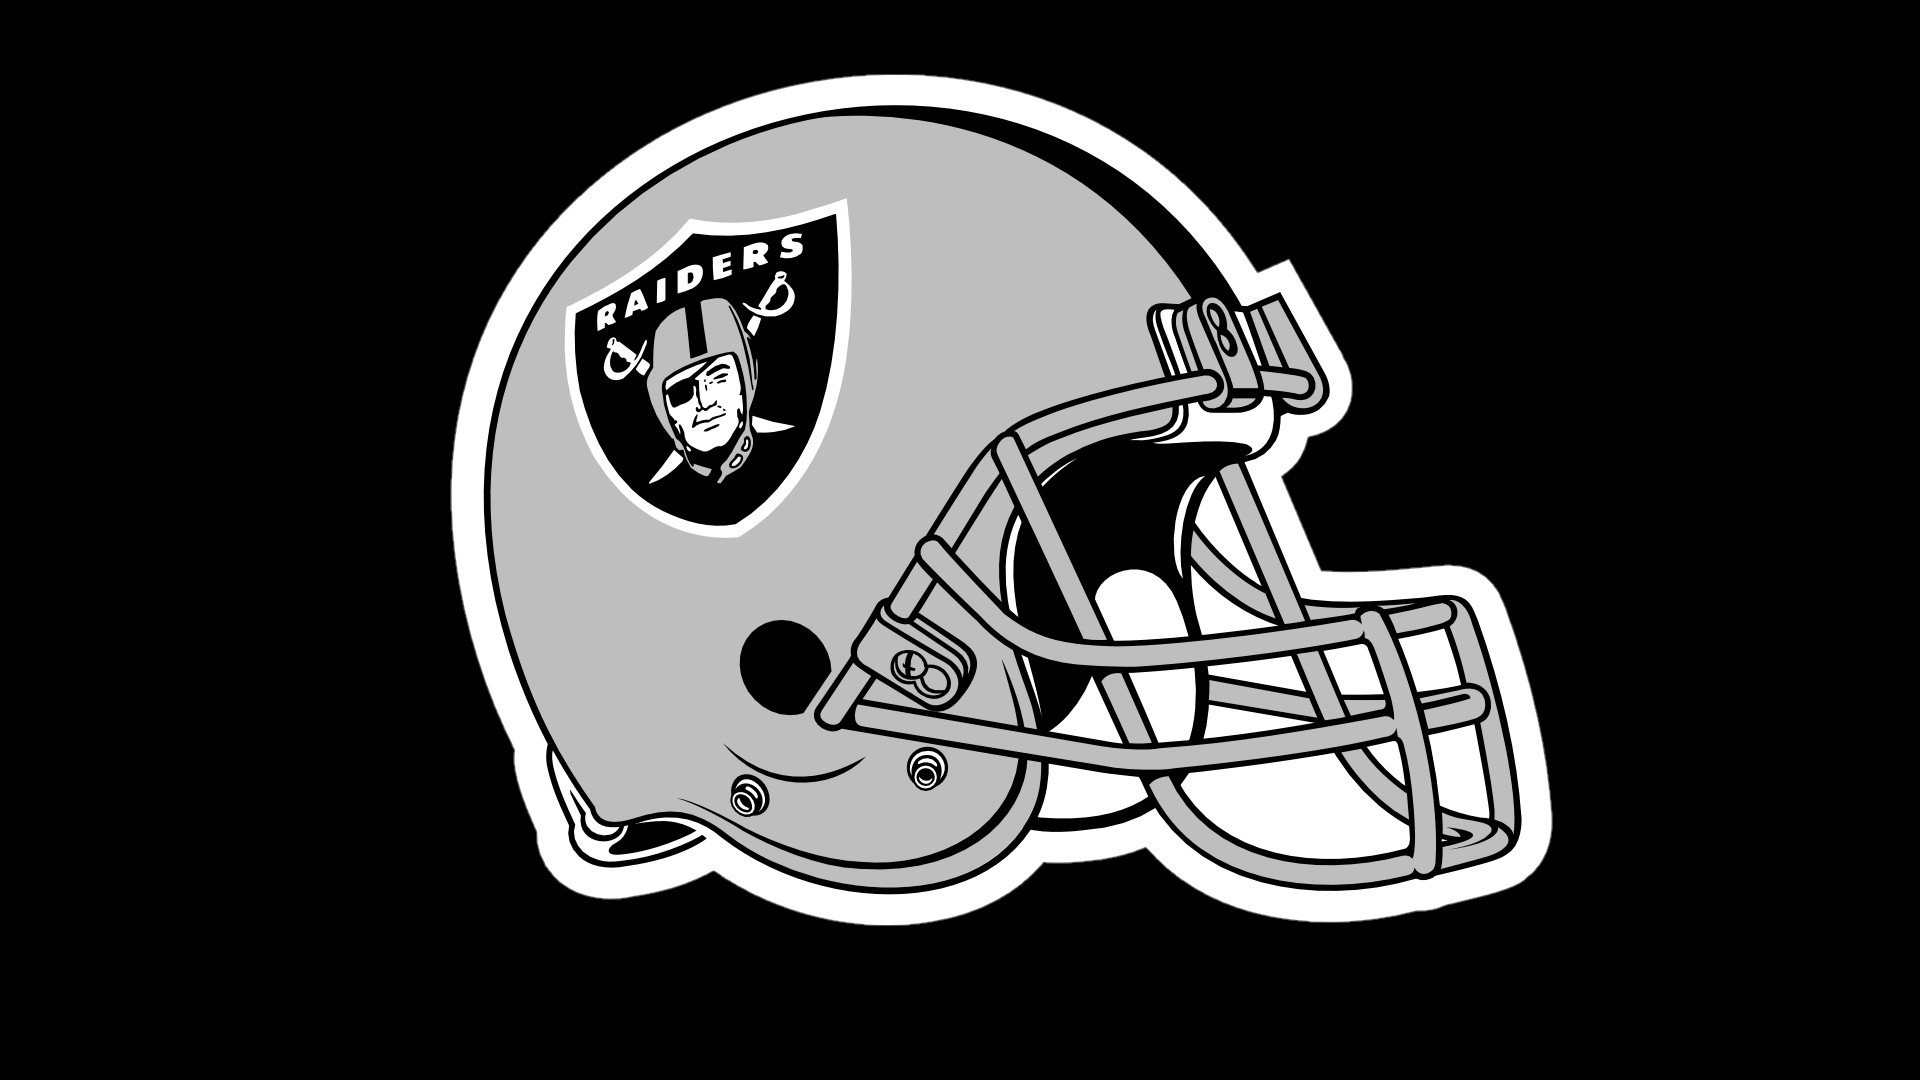 1920x1080 Oakland Raiders Logo Wallpaper » WallDevil - Best free HD desktop .